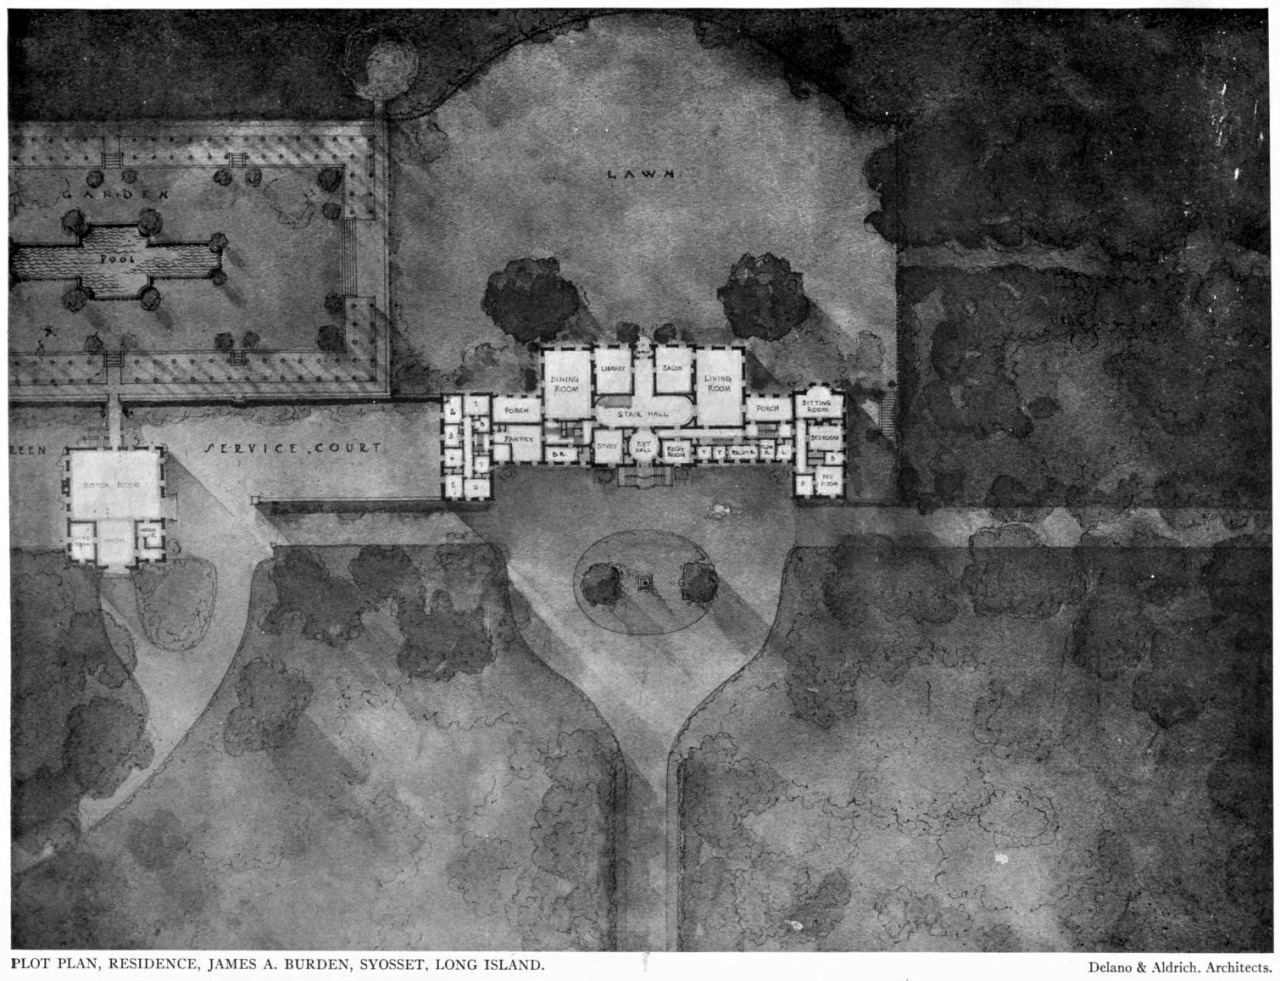 Plot plan of the Burden Residence, Syosset, Long Island